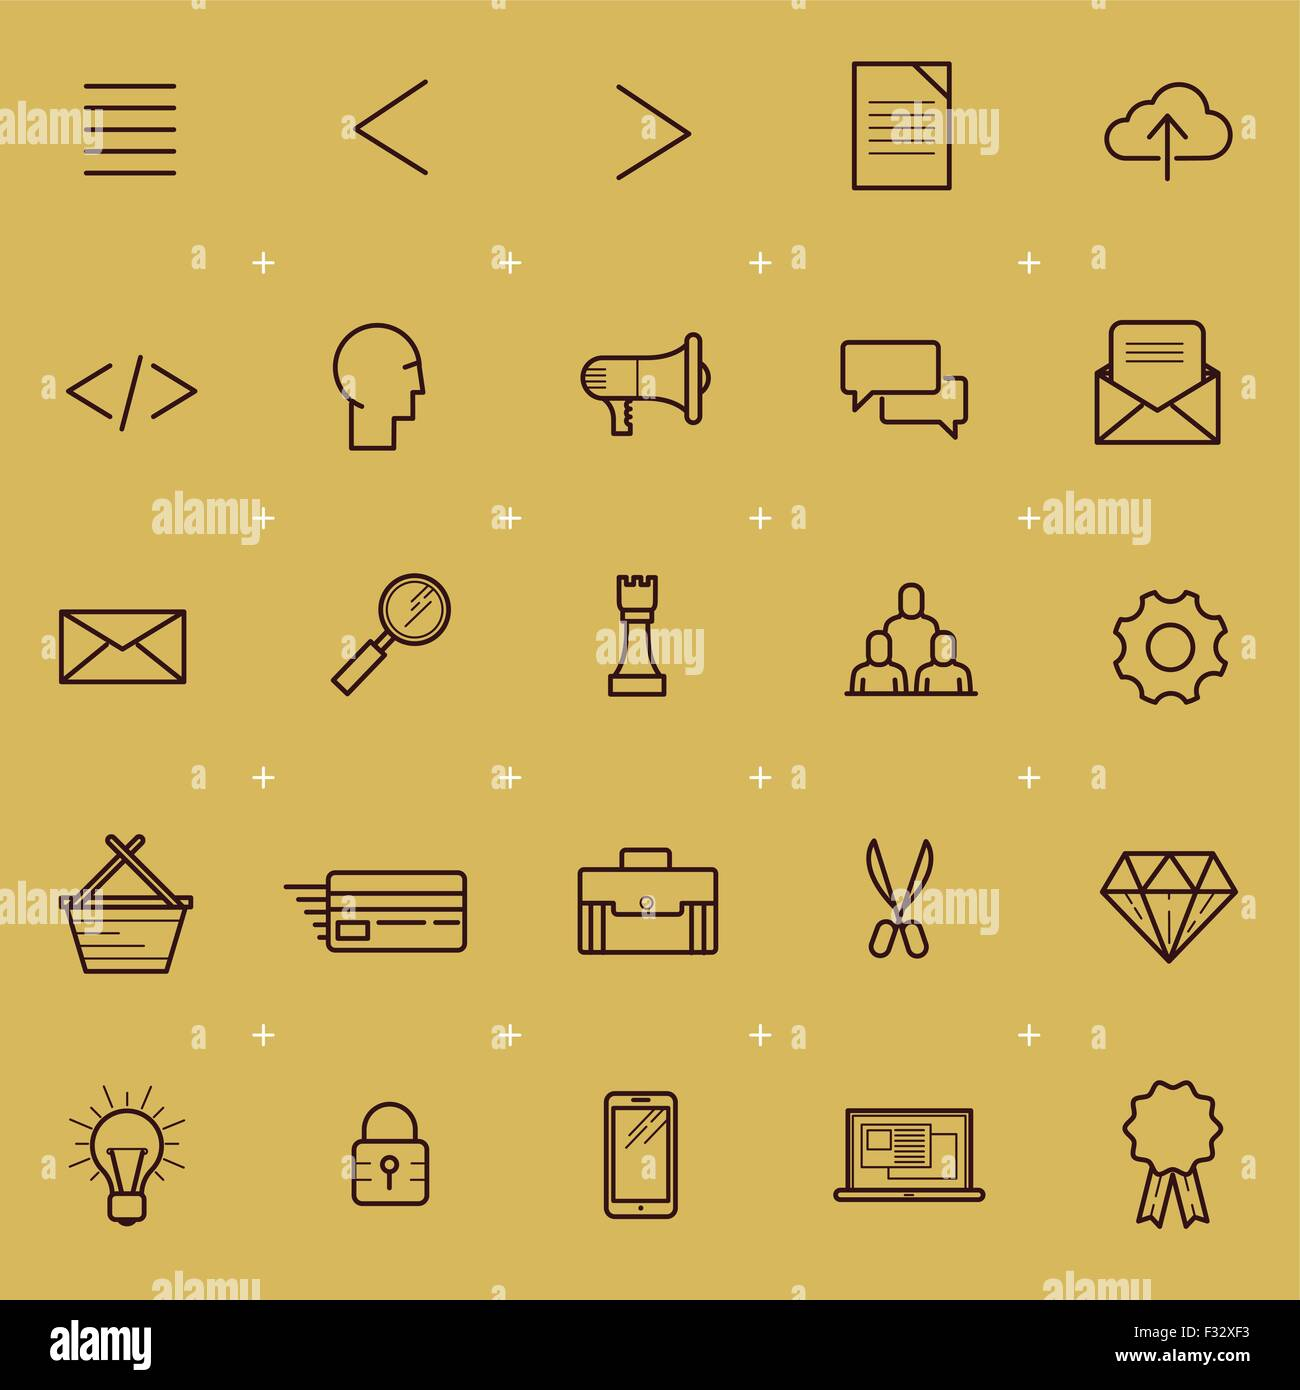 Web and Interface Icon Set. A collection of Internet and navigation icons. Vector illustration. - Stock Image